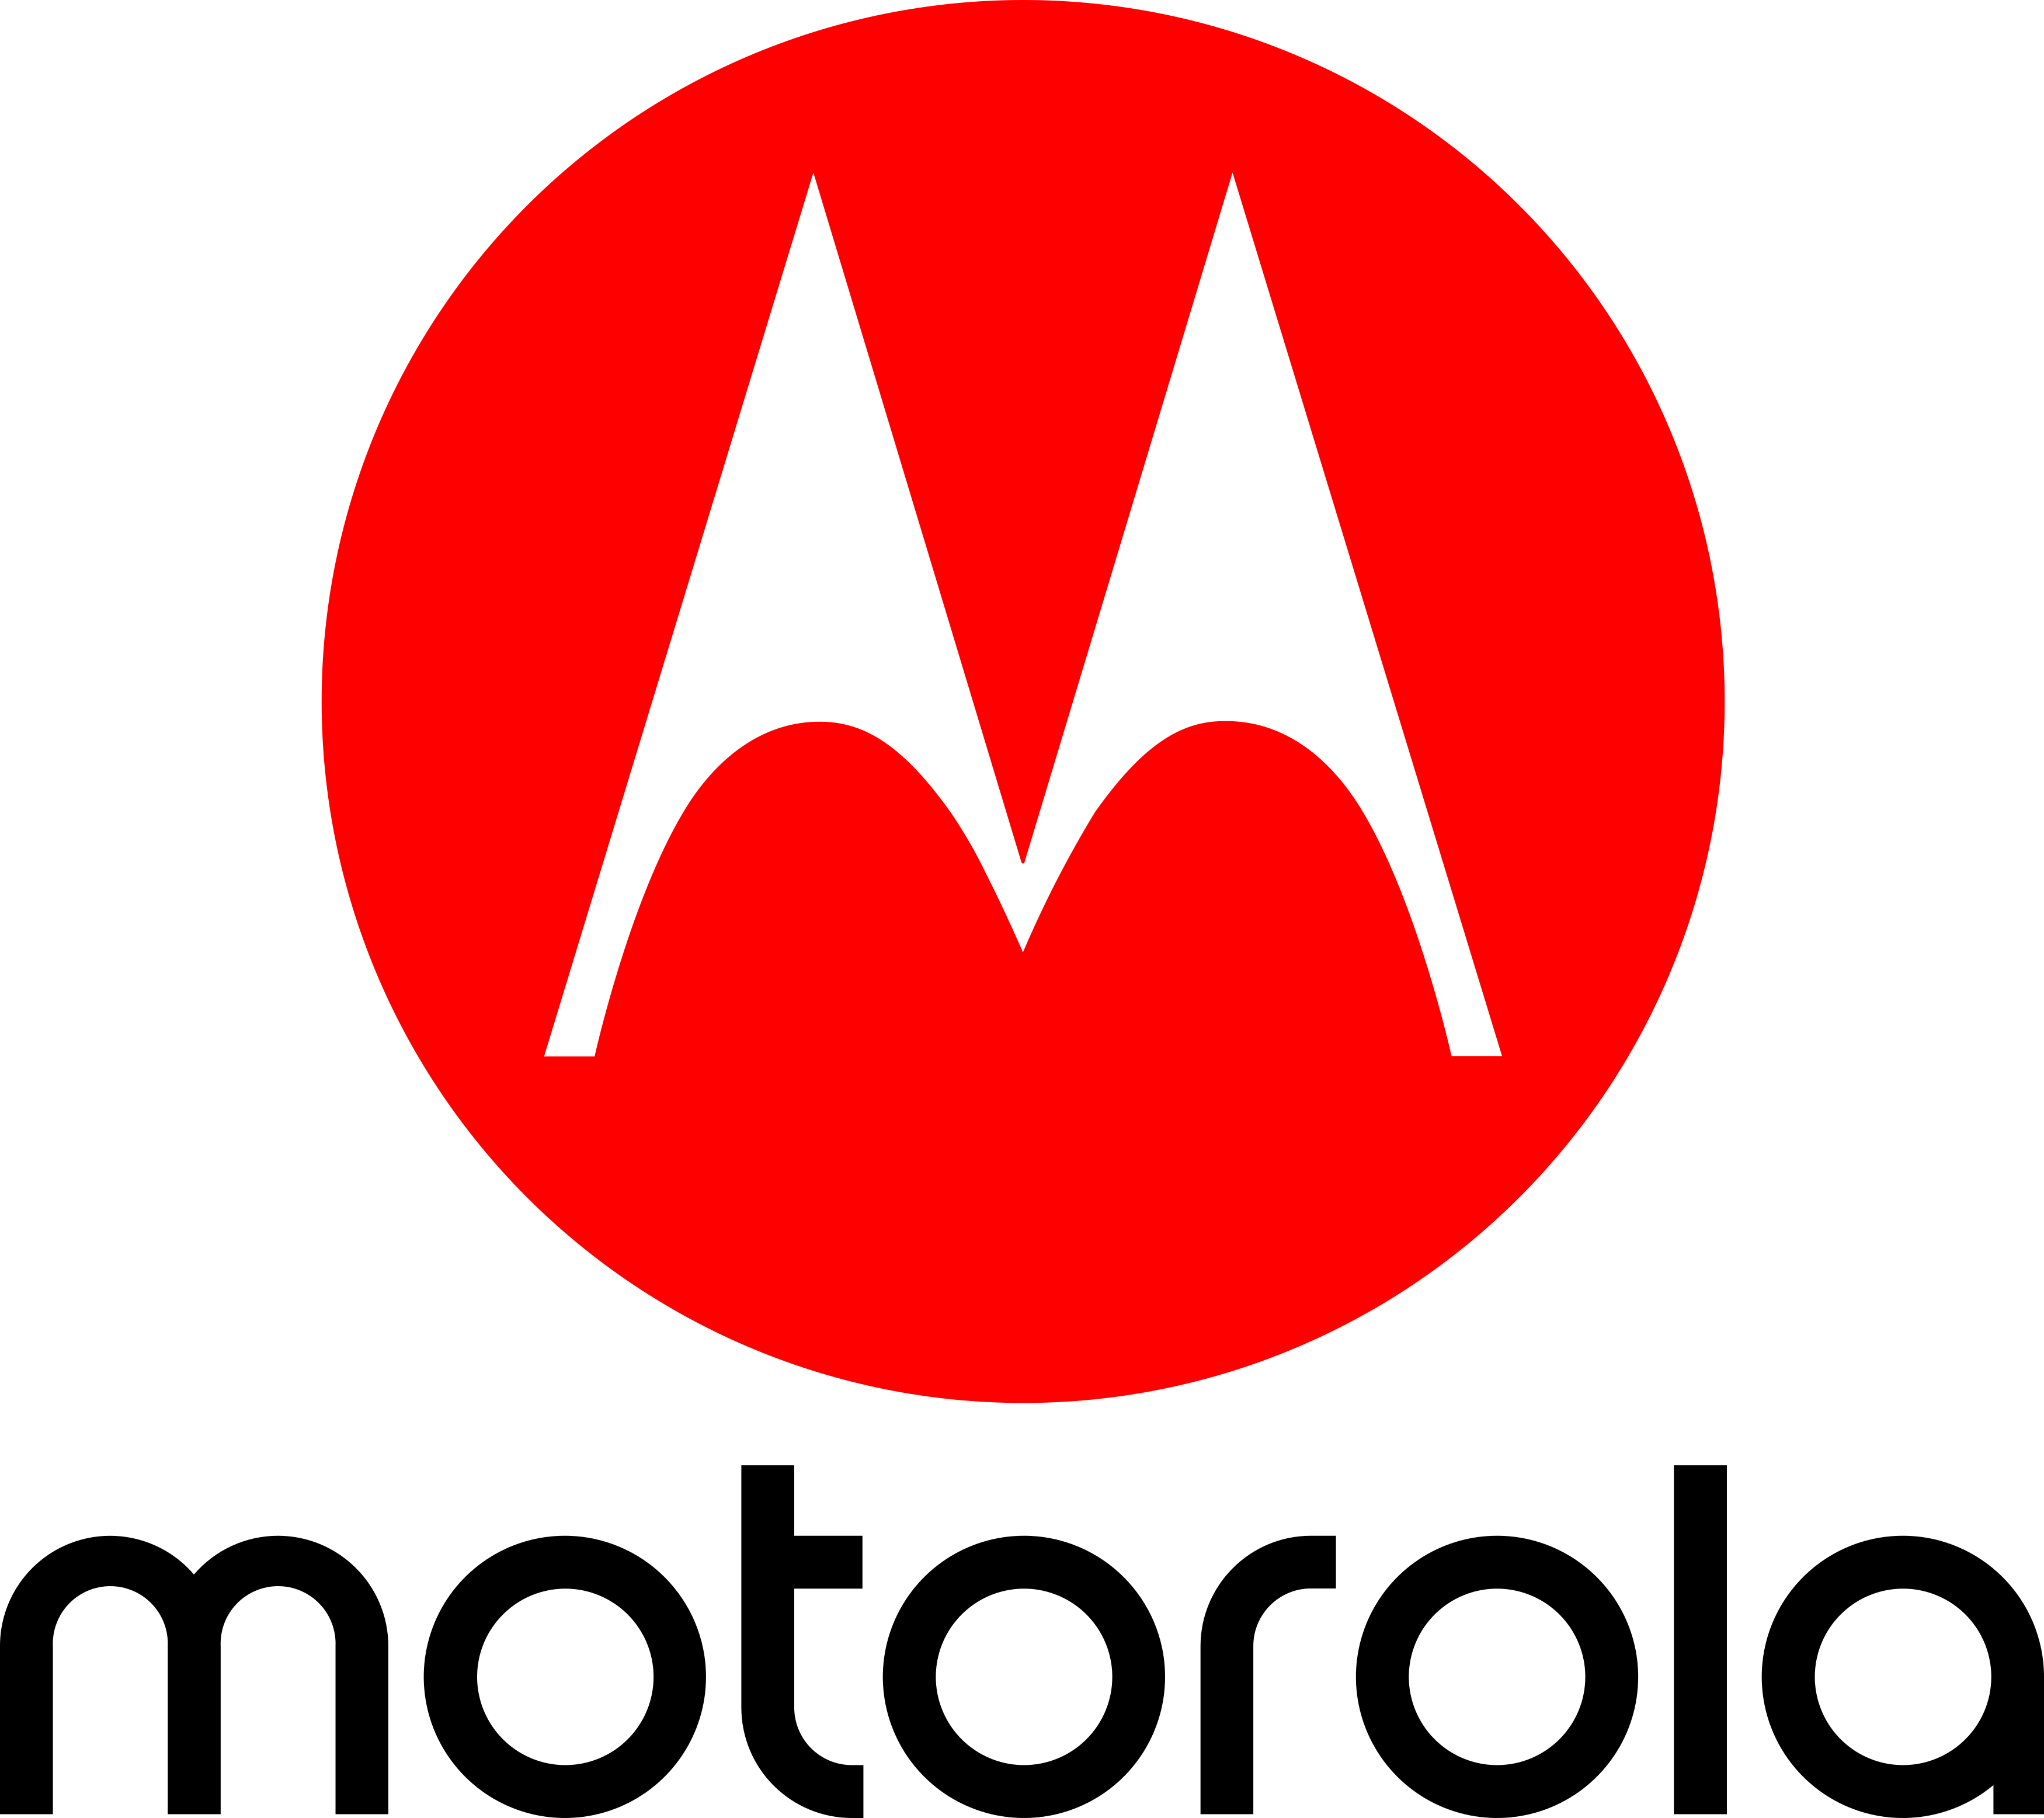 Motorola-logo-1-1 - Ace Communications - Motorola Logo PNG